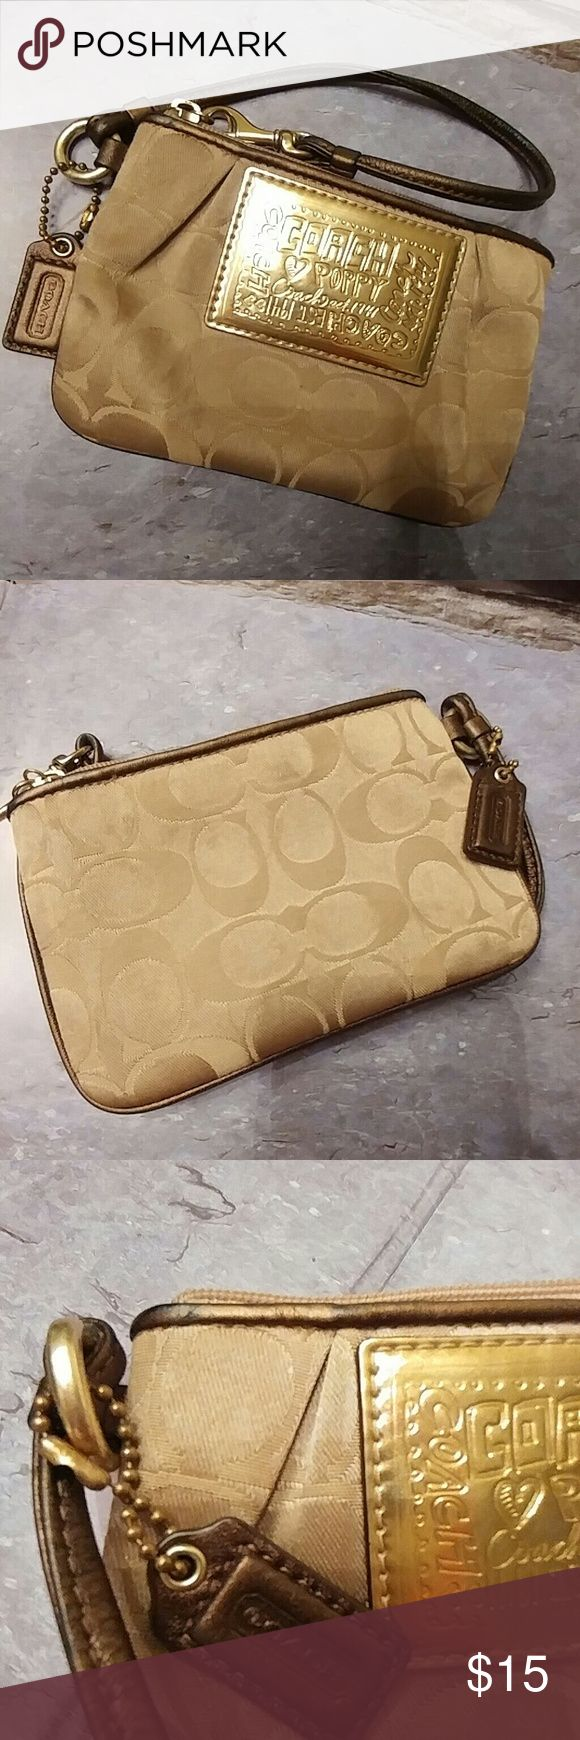 Coach Poppy Wristlet In very good, used condition. Inside is clean. Really beautiful colors! Coach Bags Clutches & Wristlets